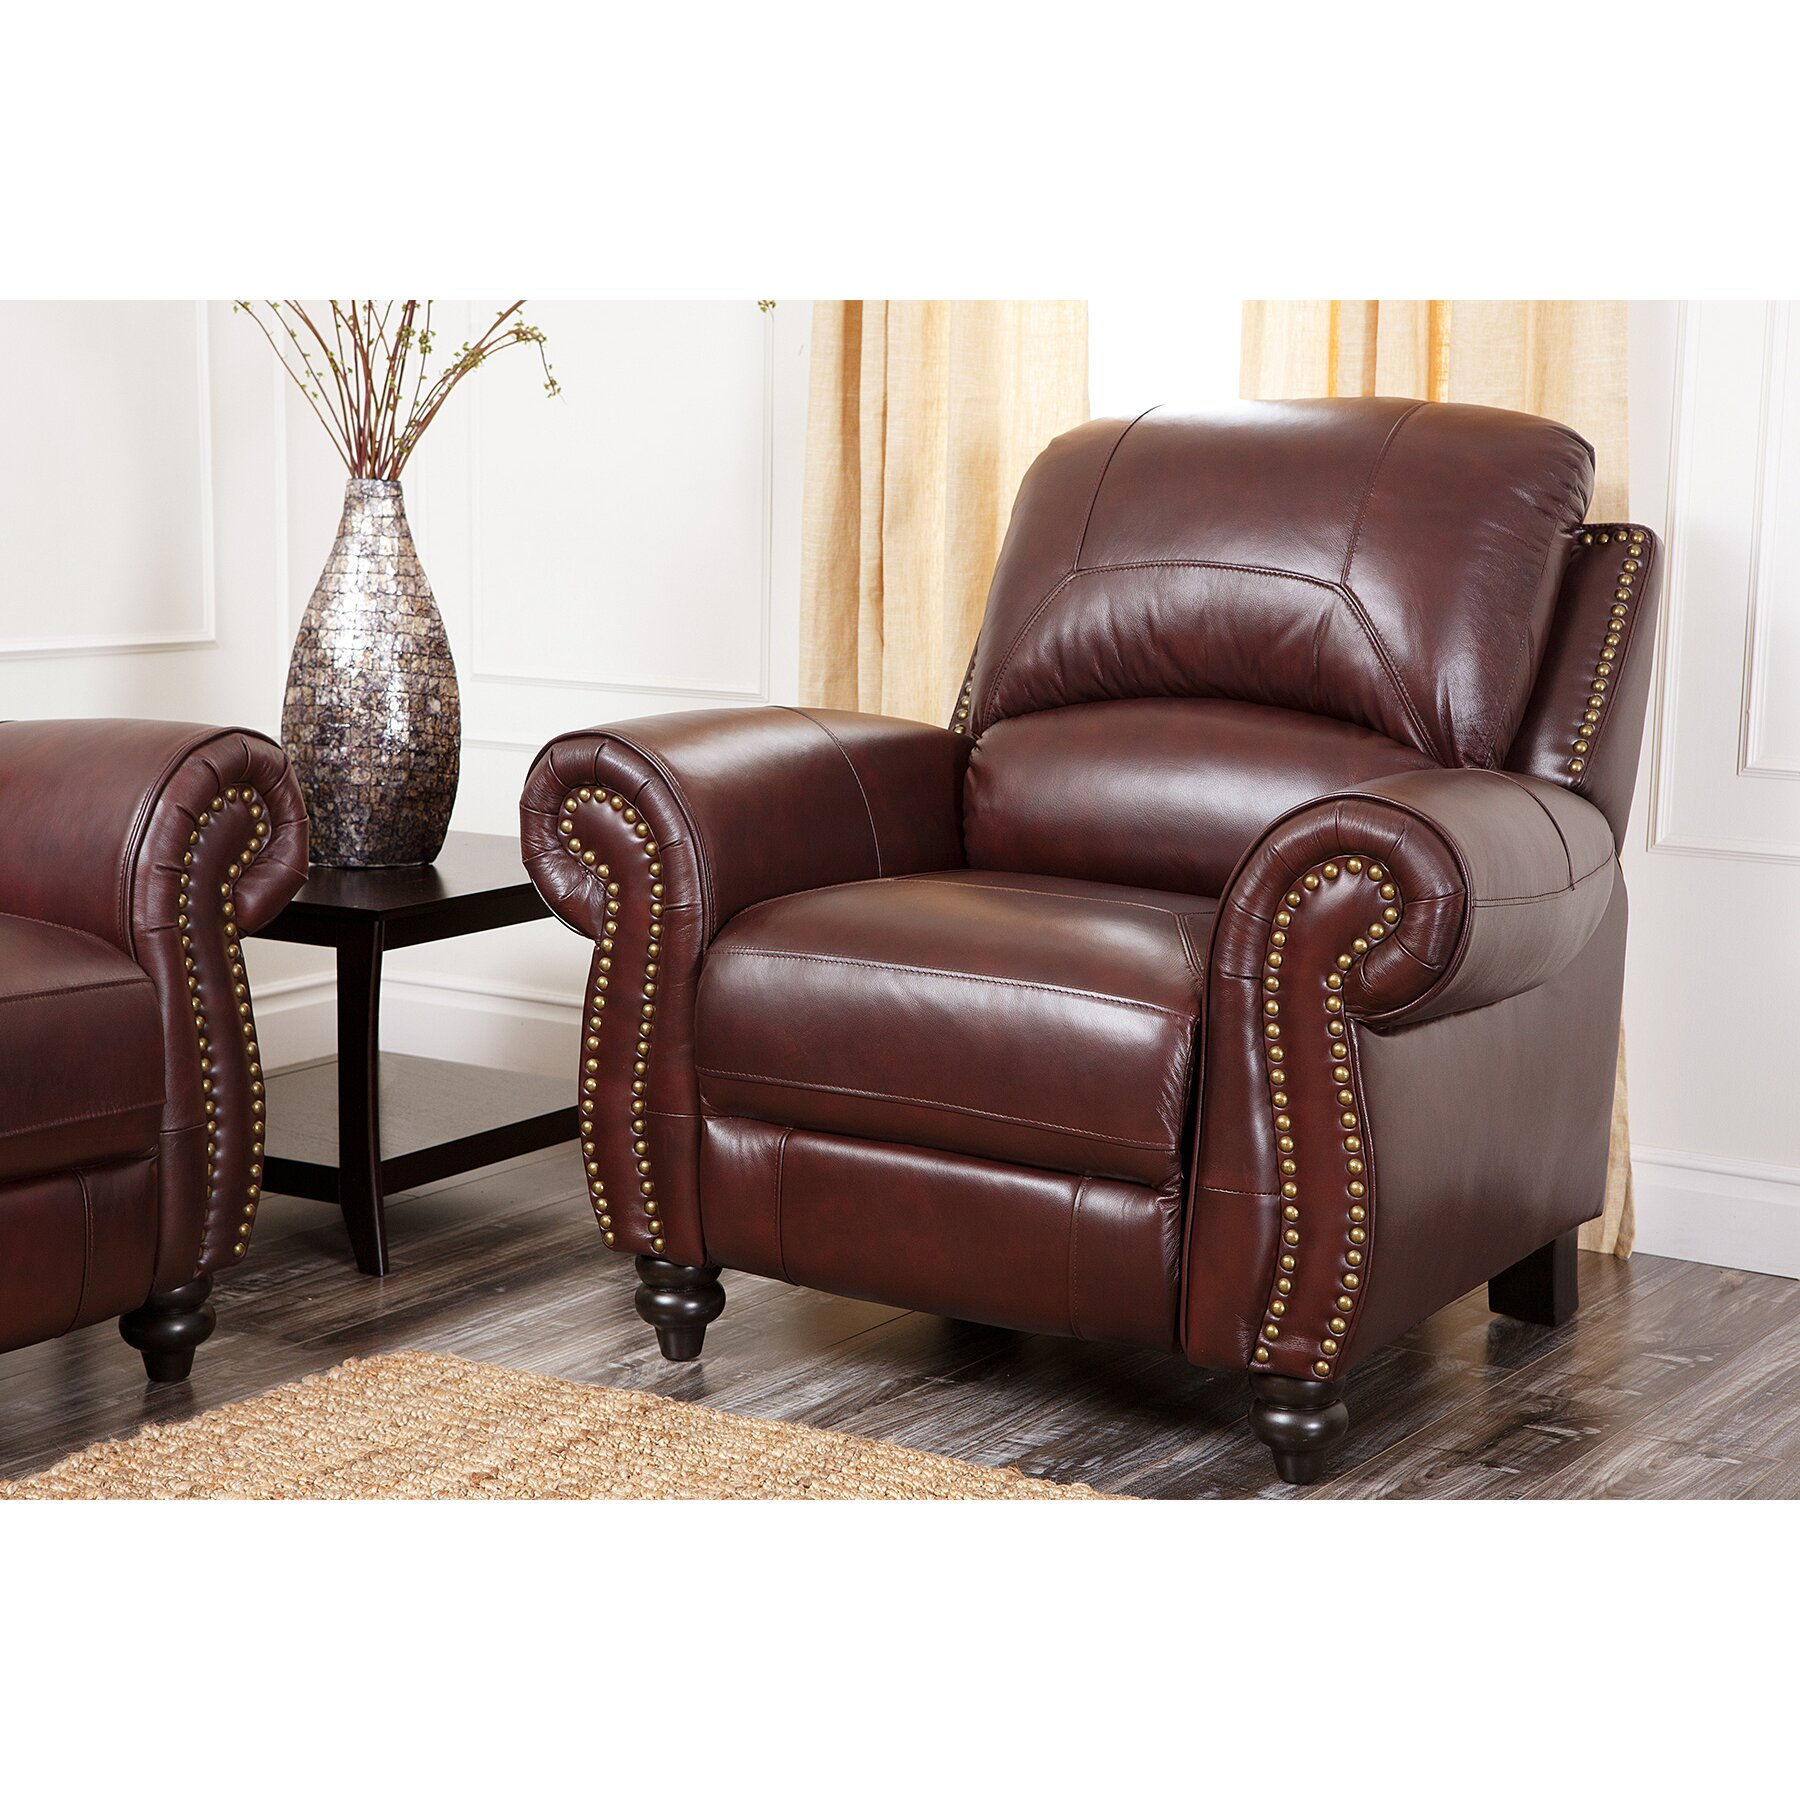 Club chair recliner - Kahle Leather Arm Chair Recliner